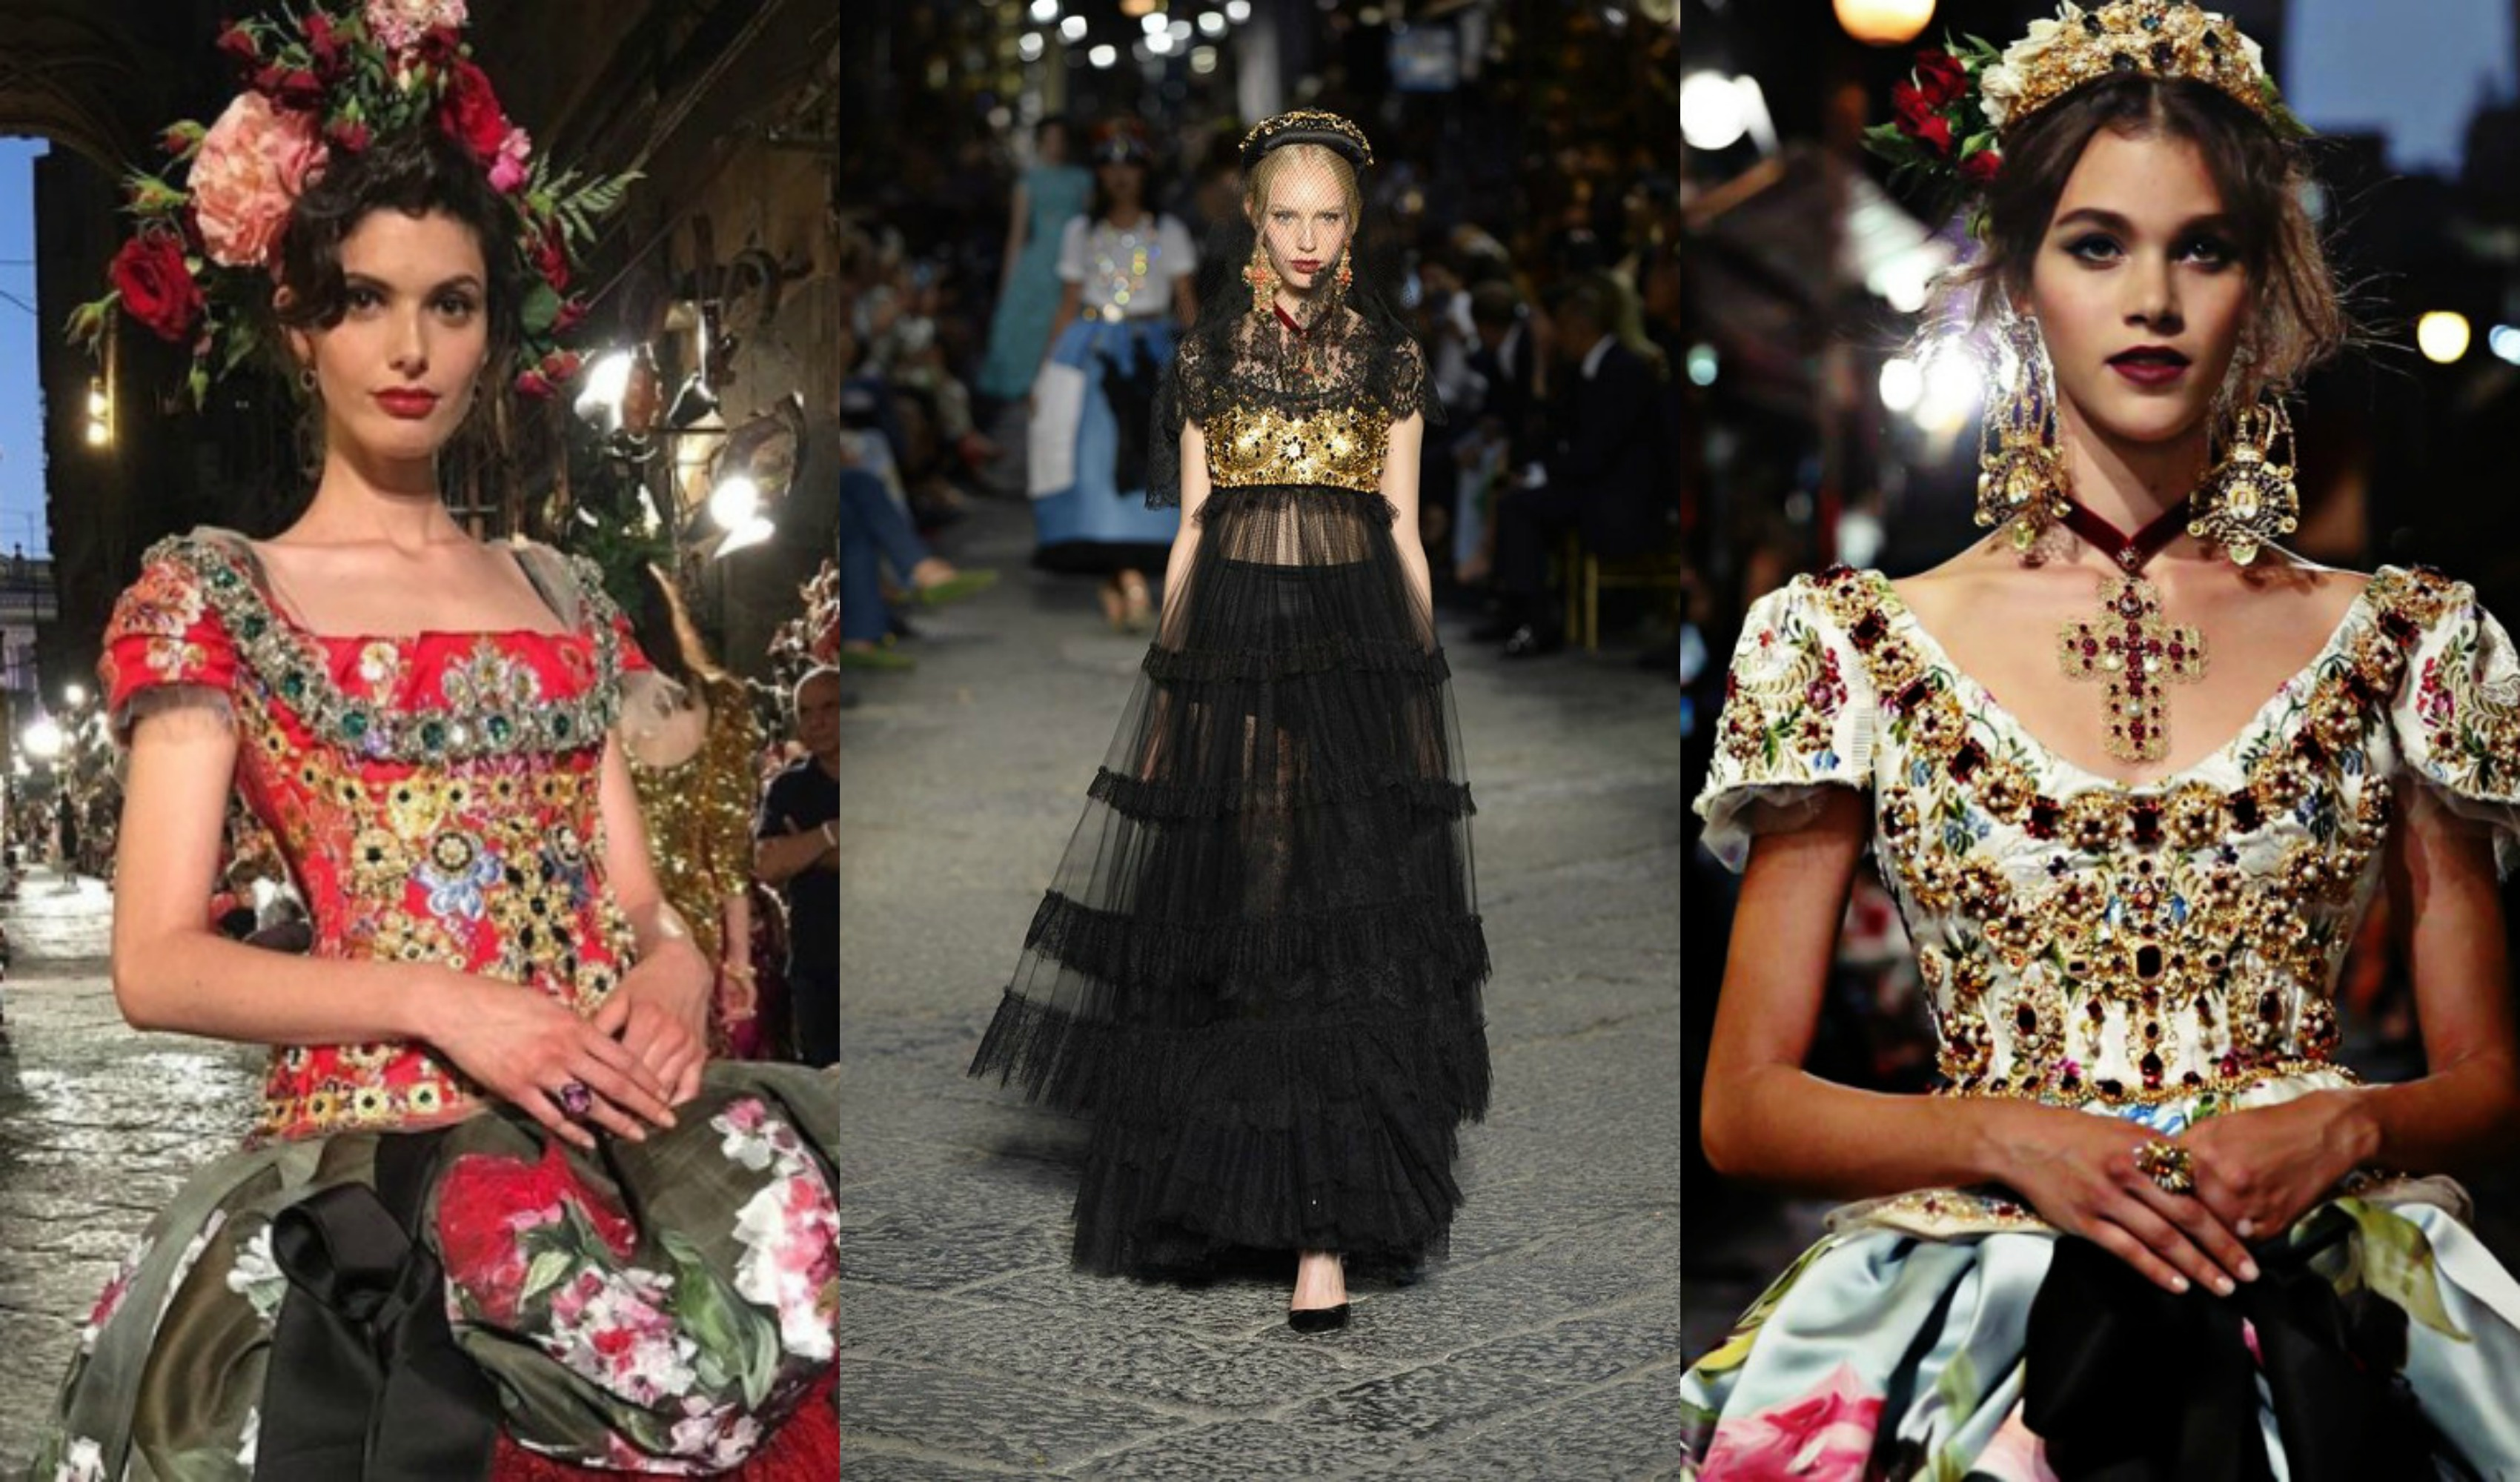 dolce e gabbana napoli, dolce e gabbana sfilata napoli, dolce&gabbana alta moda fall 2016, theladycracy.it, elisa bellino, fashion blog, fashion blog 2016, fashion blogger italia 2016, fashion bloggers, fashion blogger 2016, fashion blogger famose, fashion blogger milano, cosa mi metto la sera d'estate, cosa comprare zara saldi 2016, cosa mettersi sera estate 2016, outfit blogger 2016, fashion inspiration, total white look, total white outfit, tailleur bianco zara, pastel hair, dreamy,